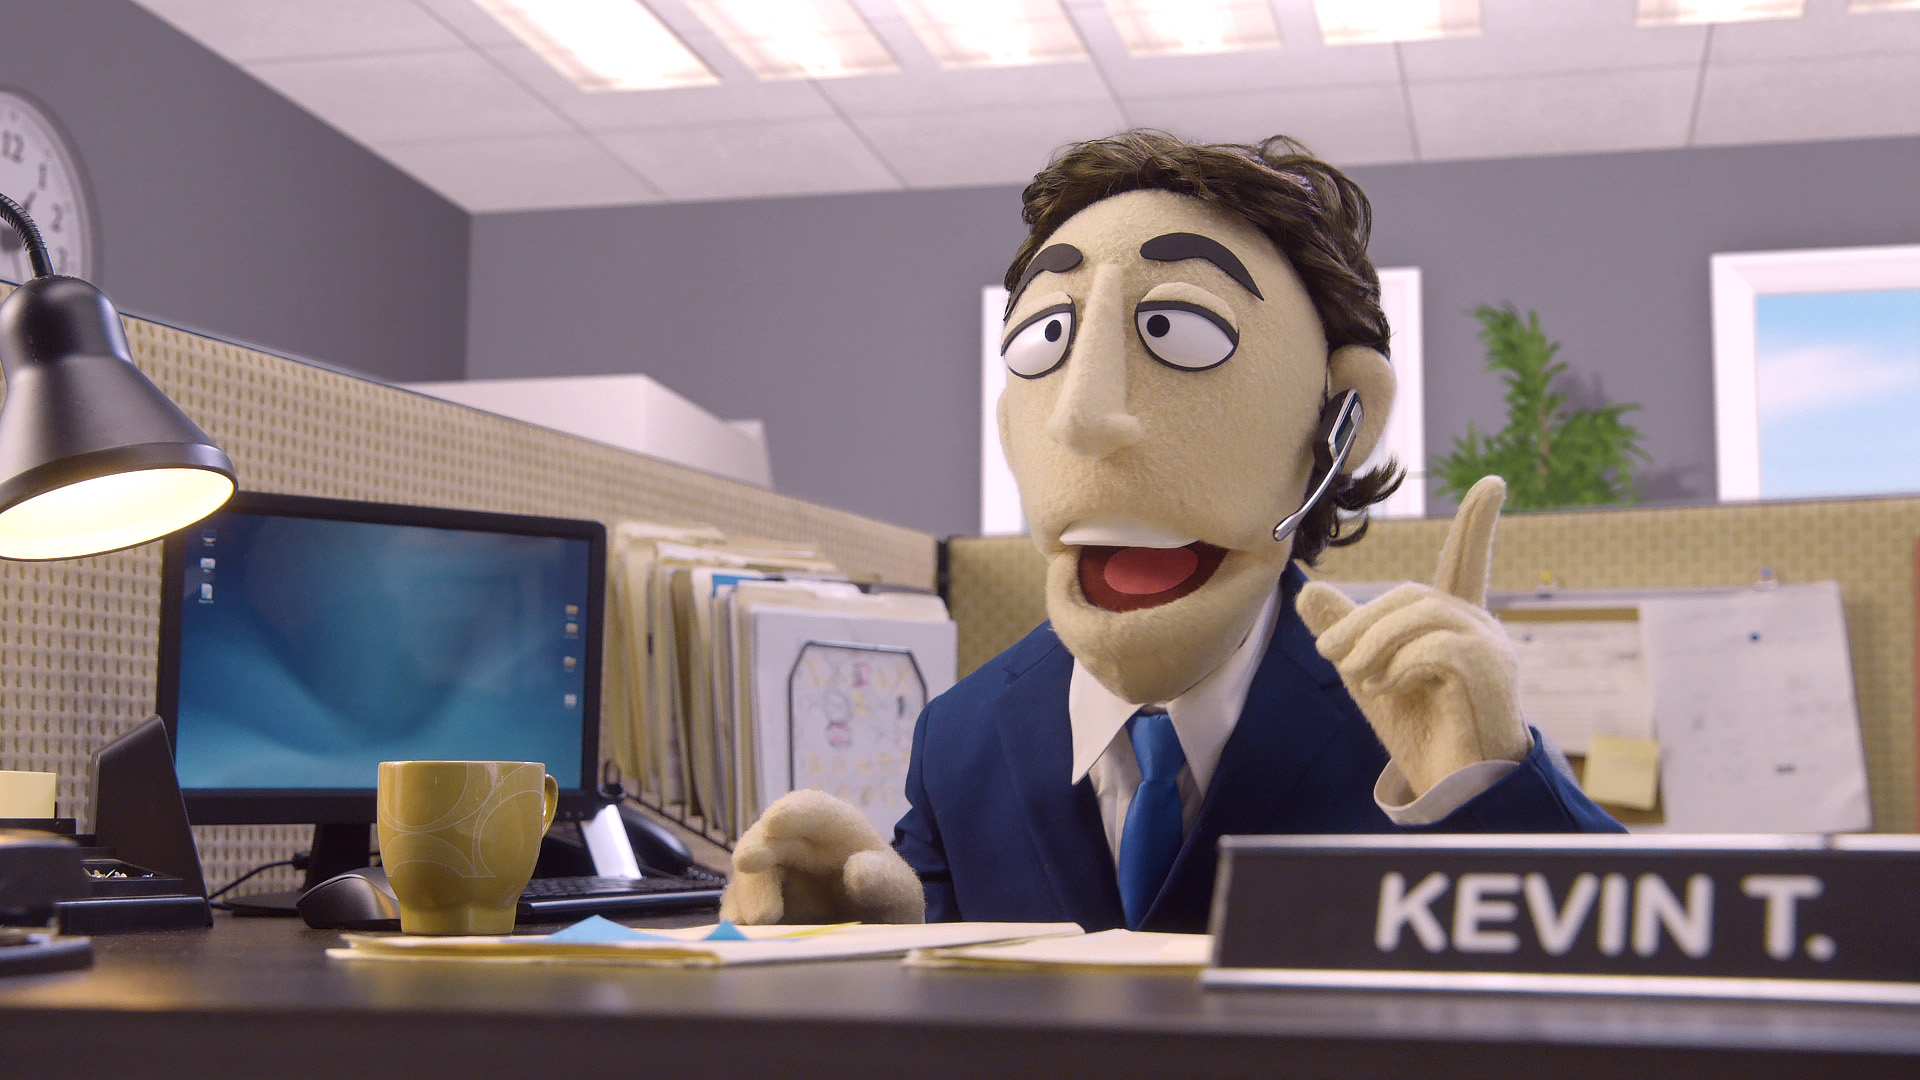 Kevin Nealon's puppet prank calls a flower shop in a scene for Comedy Central's Crank Yankers directed by Todd Bishop